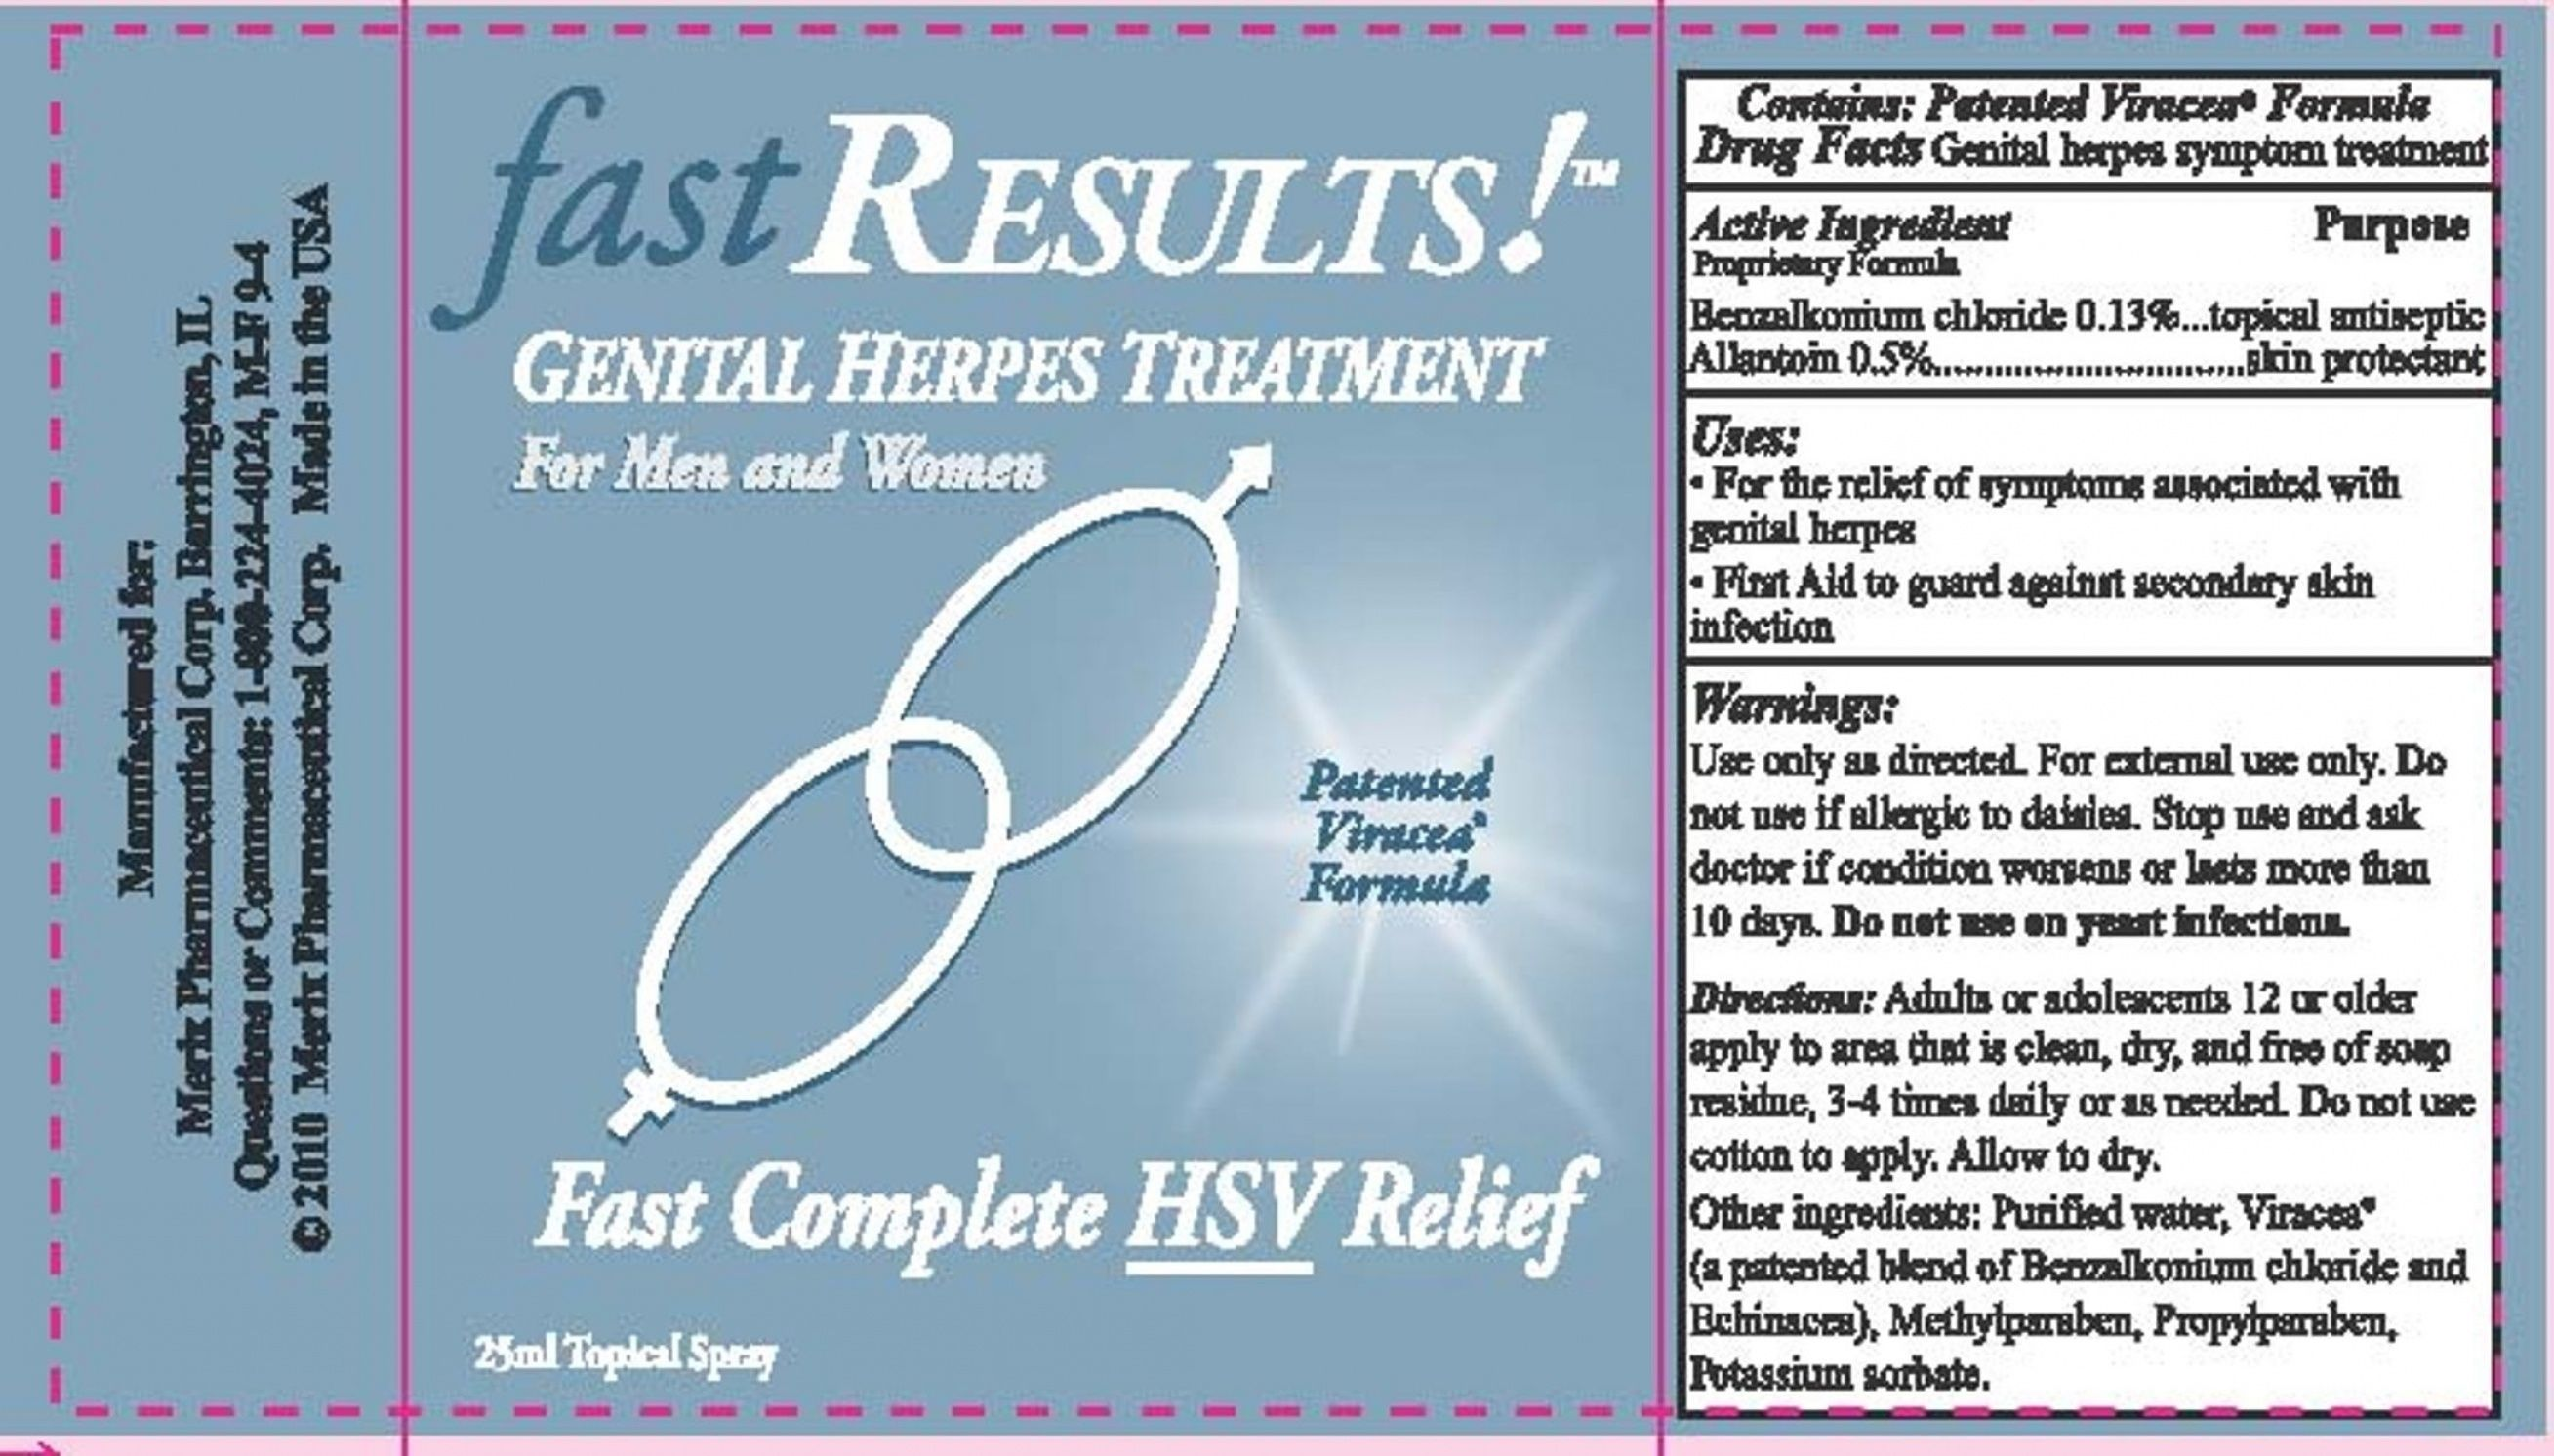 Pharmaceutical remedies for herpes